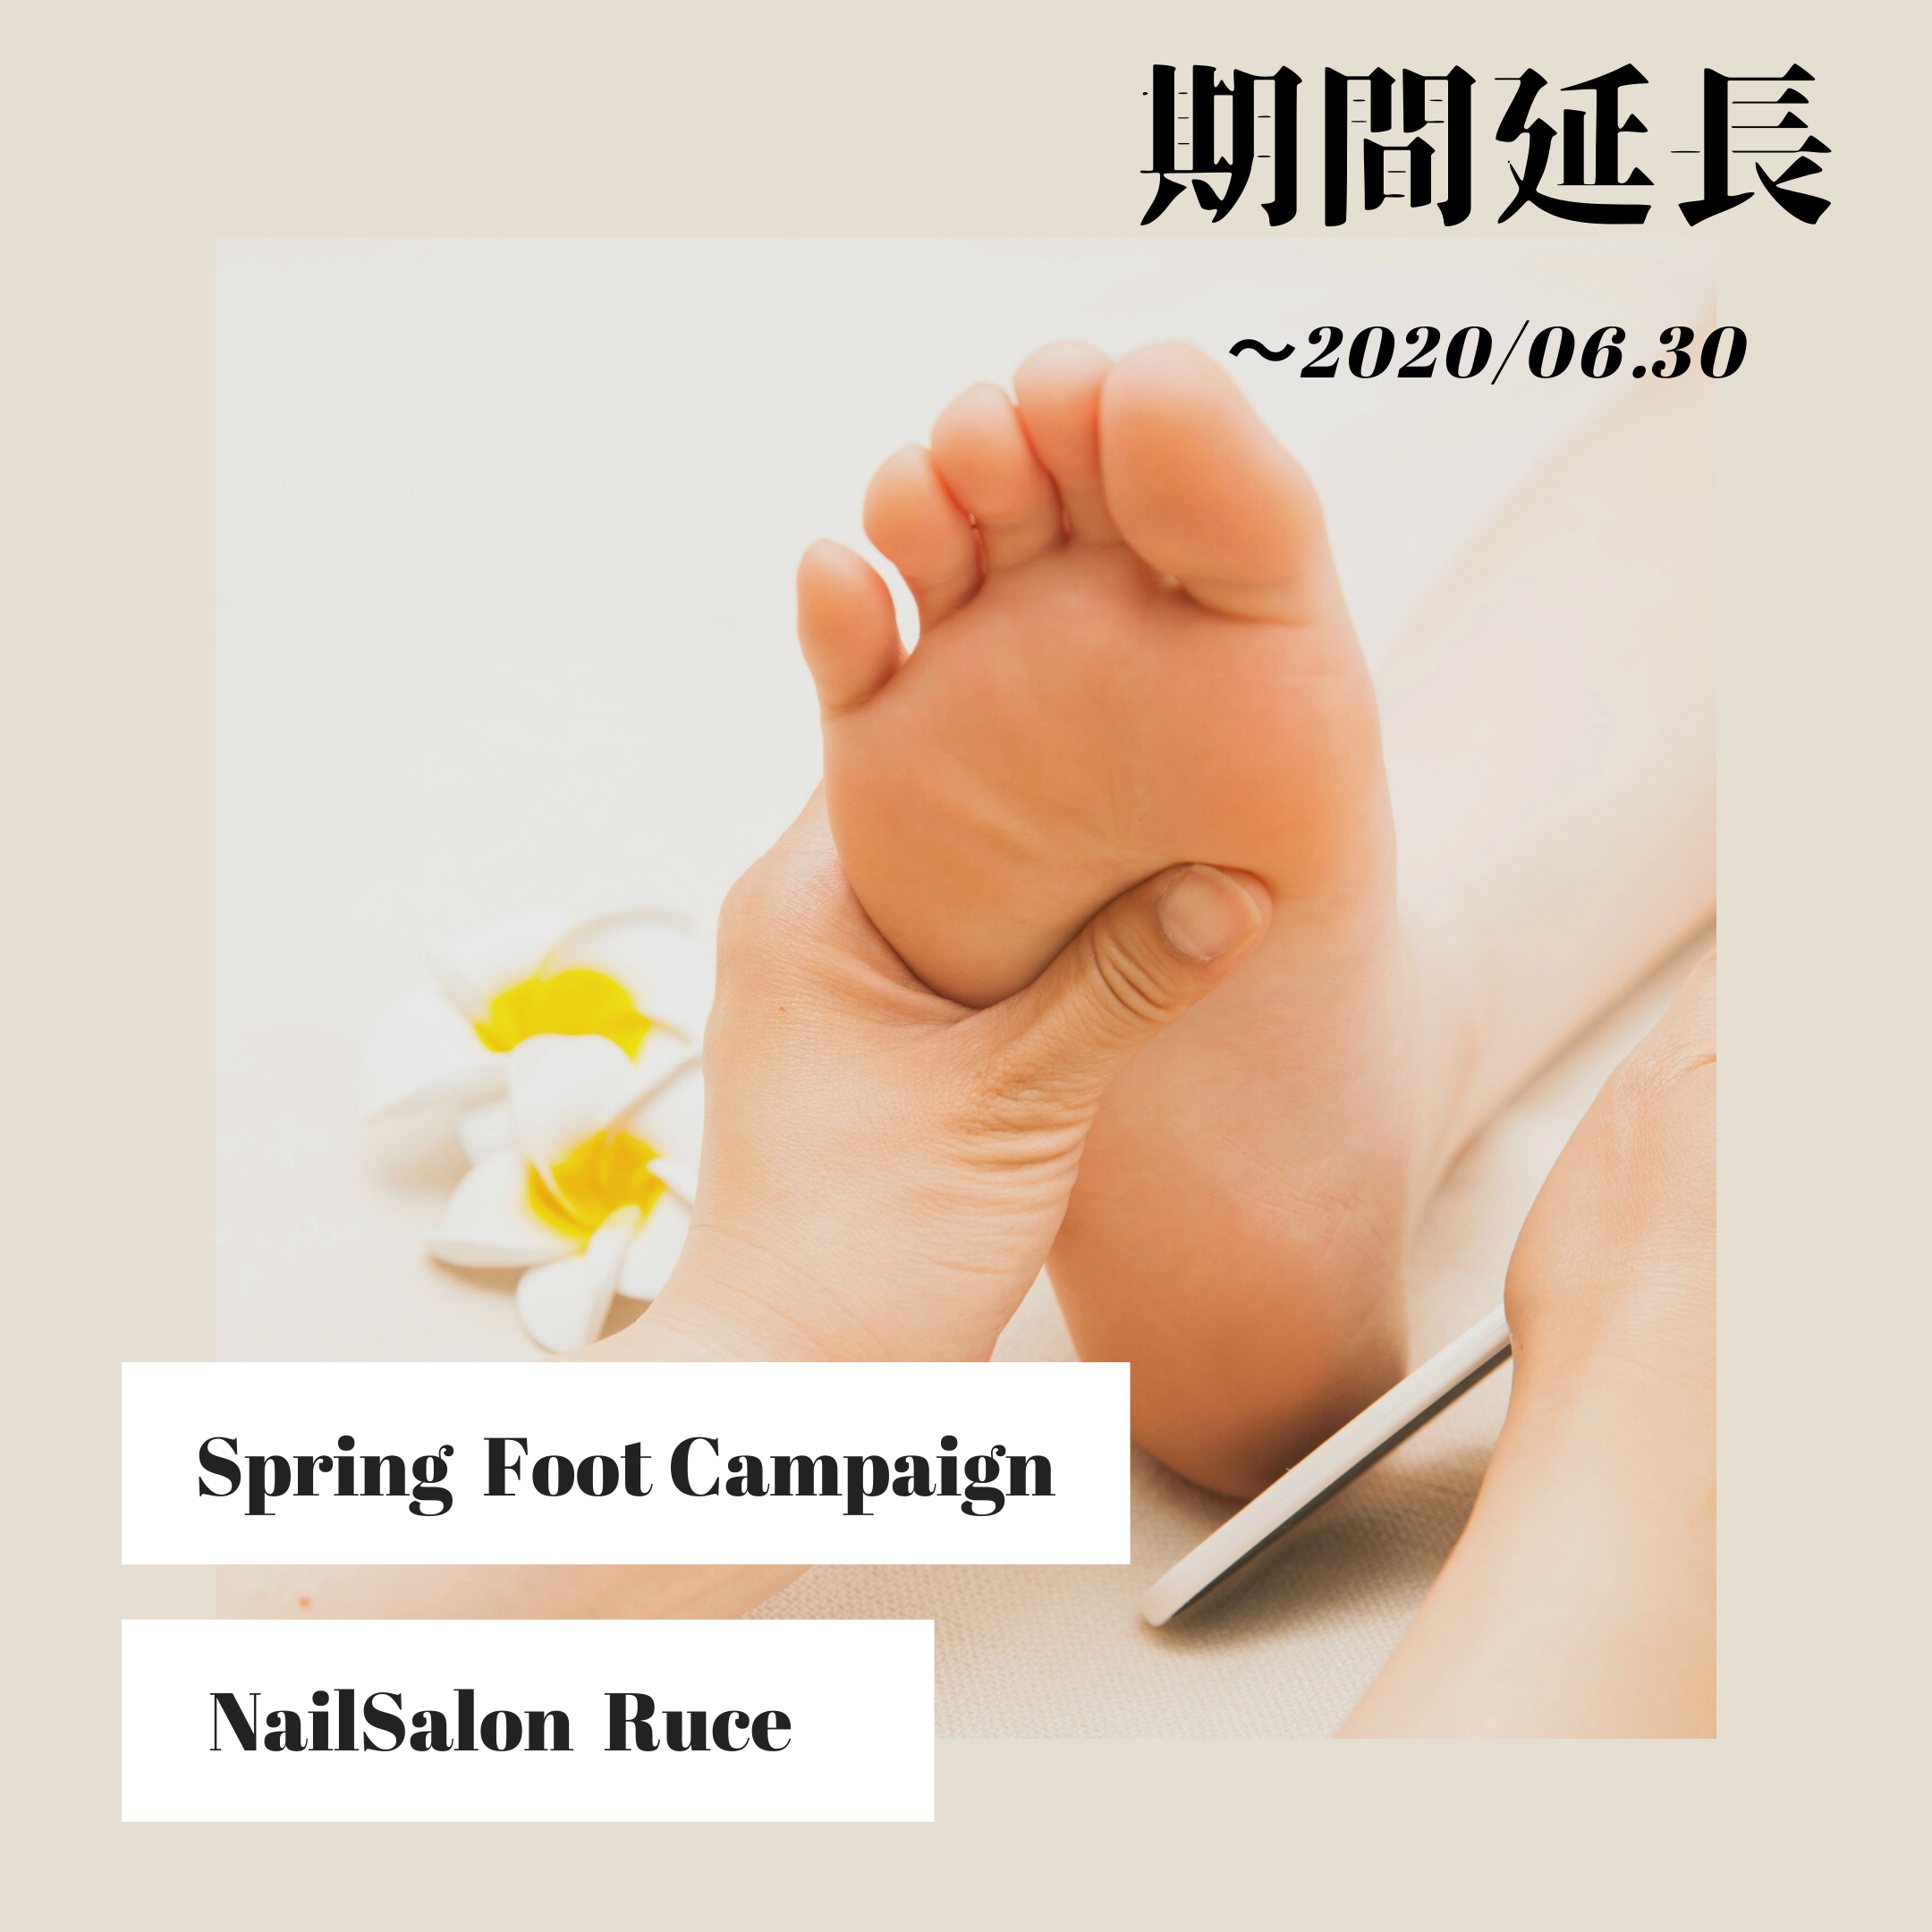 spring foot campaign 期間延長のお知らせ